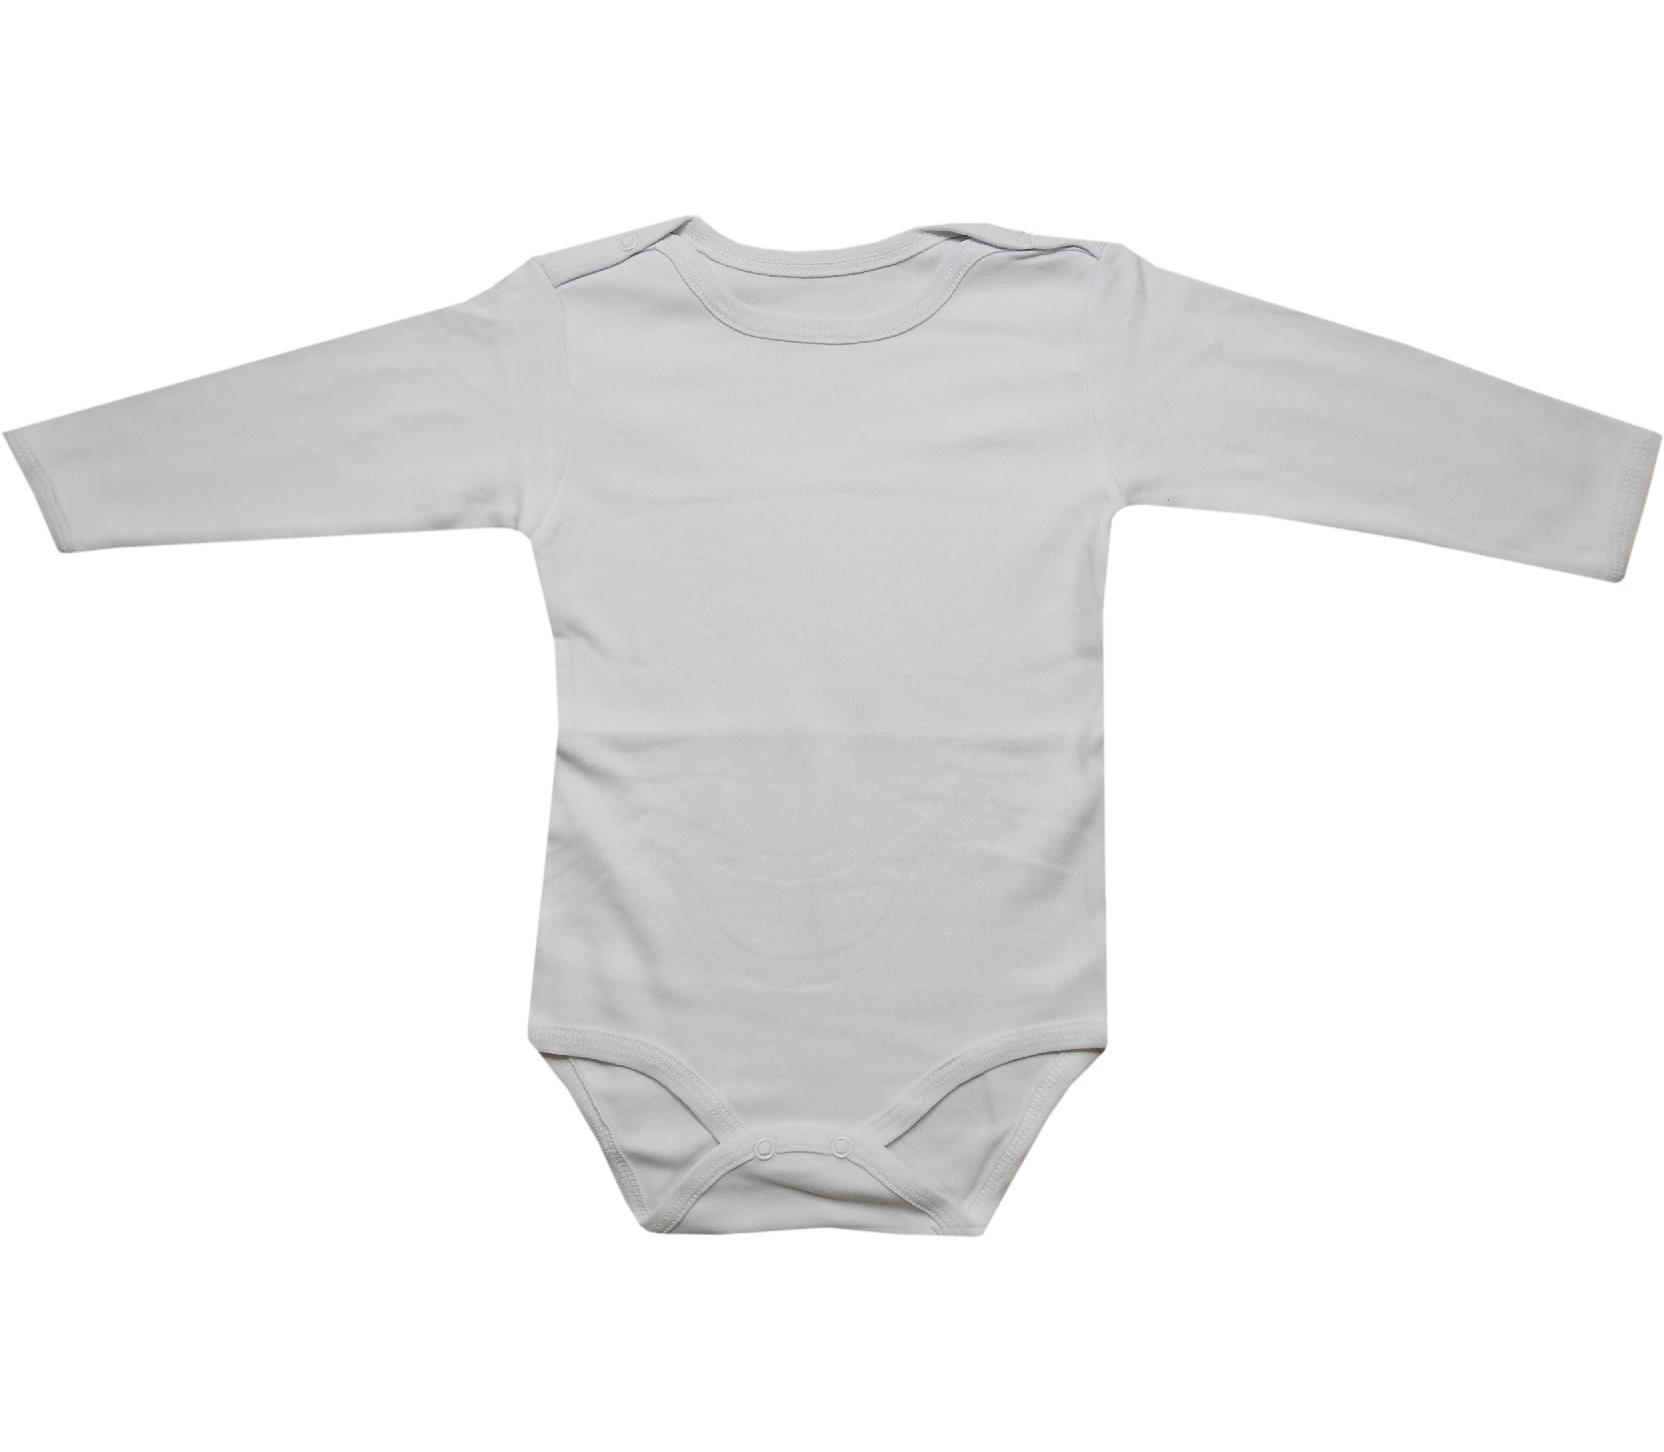 279 Wholesale snap fastening bodysuit for baby (9-12-18 month)